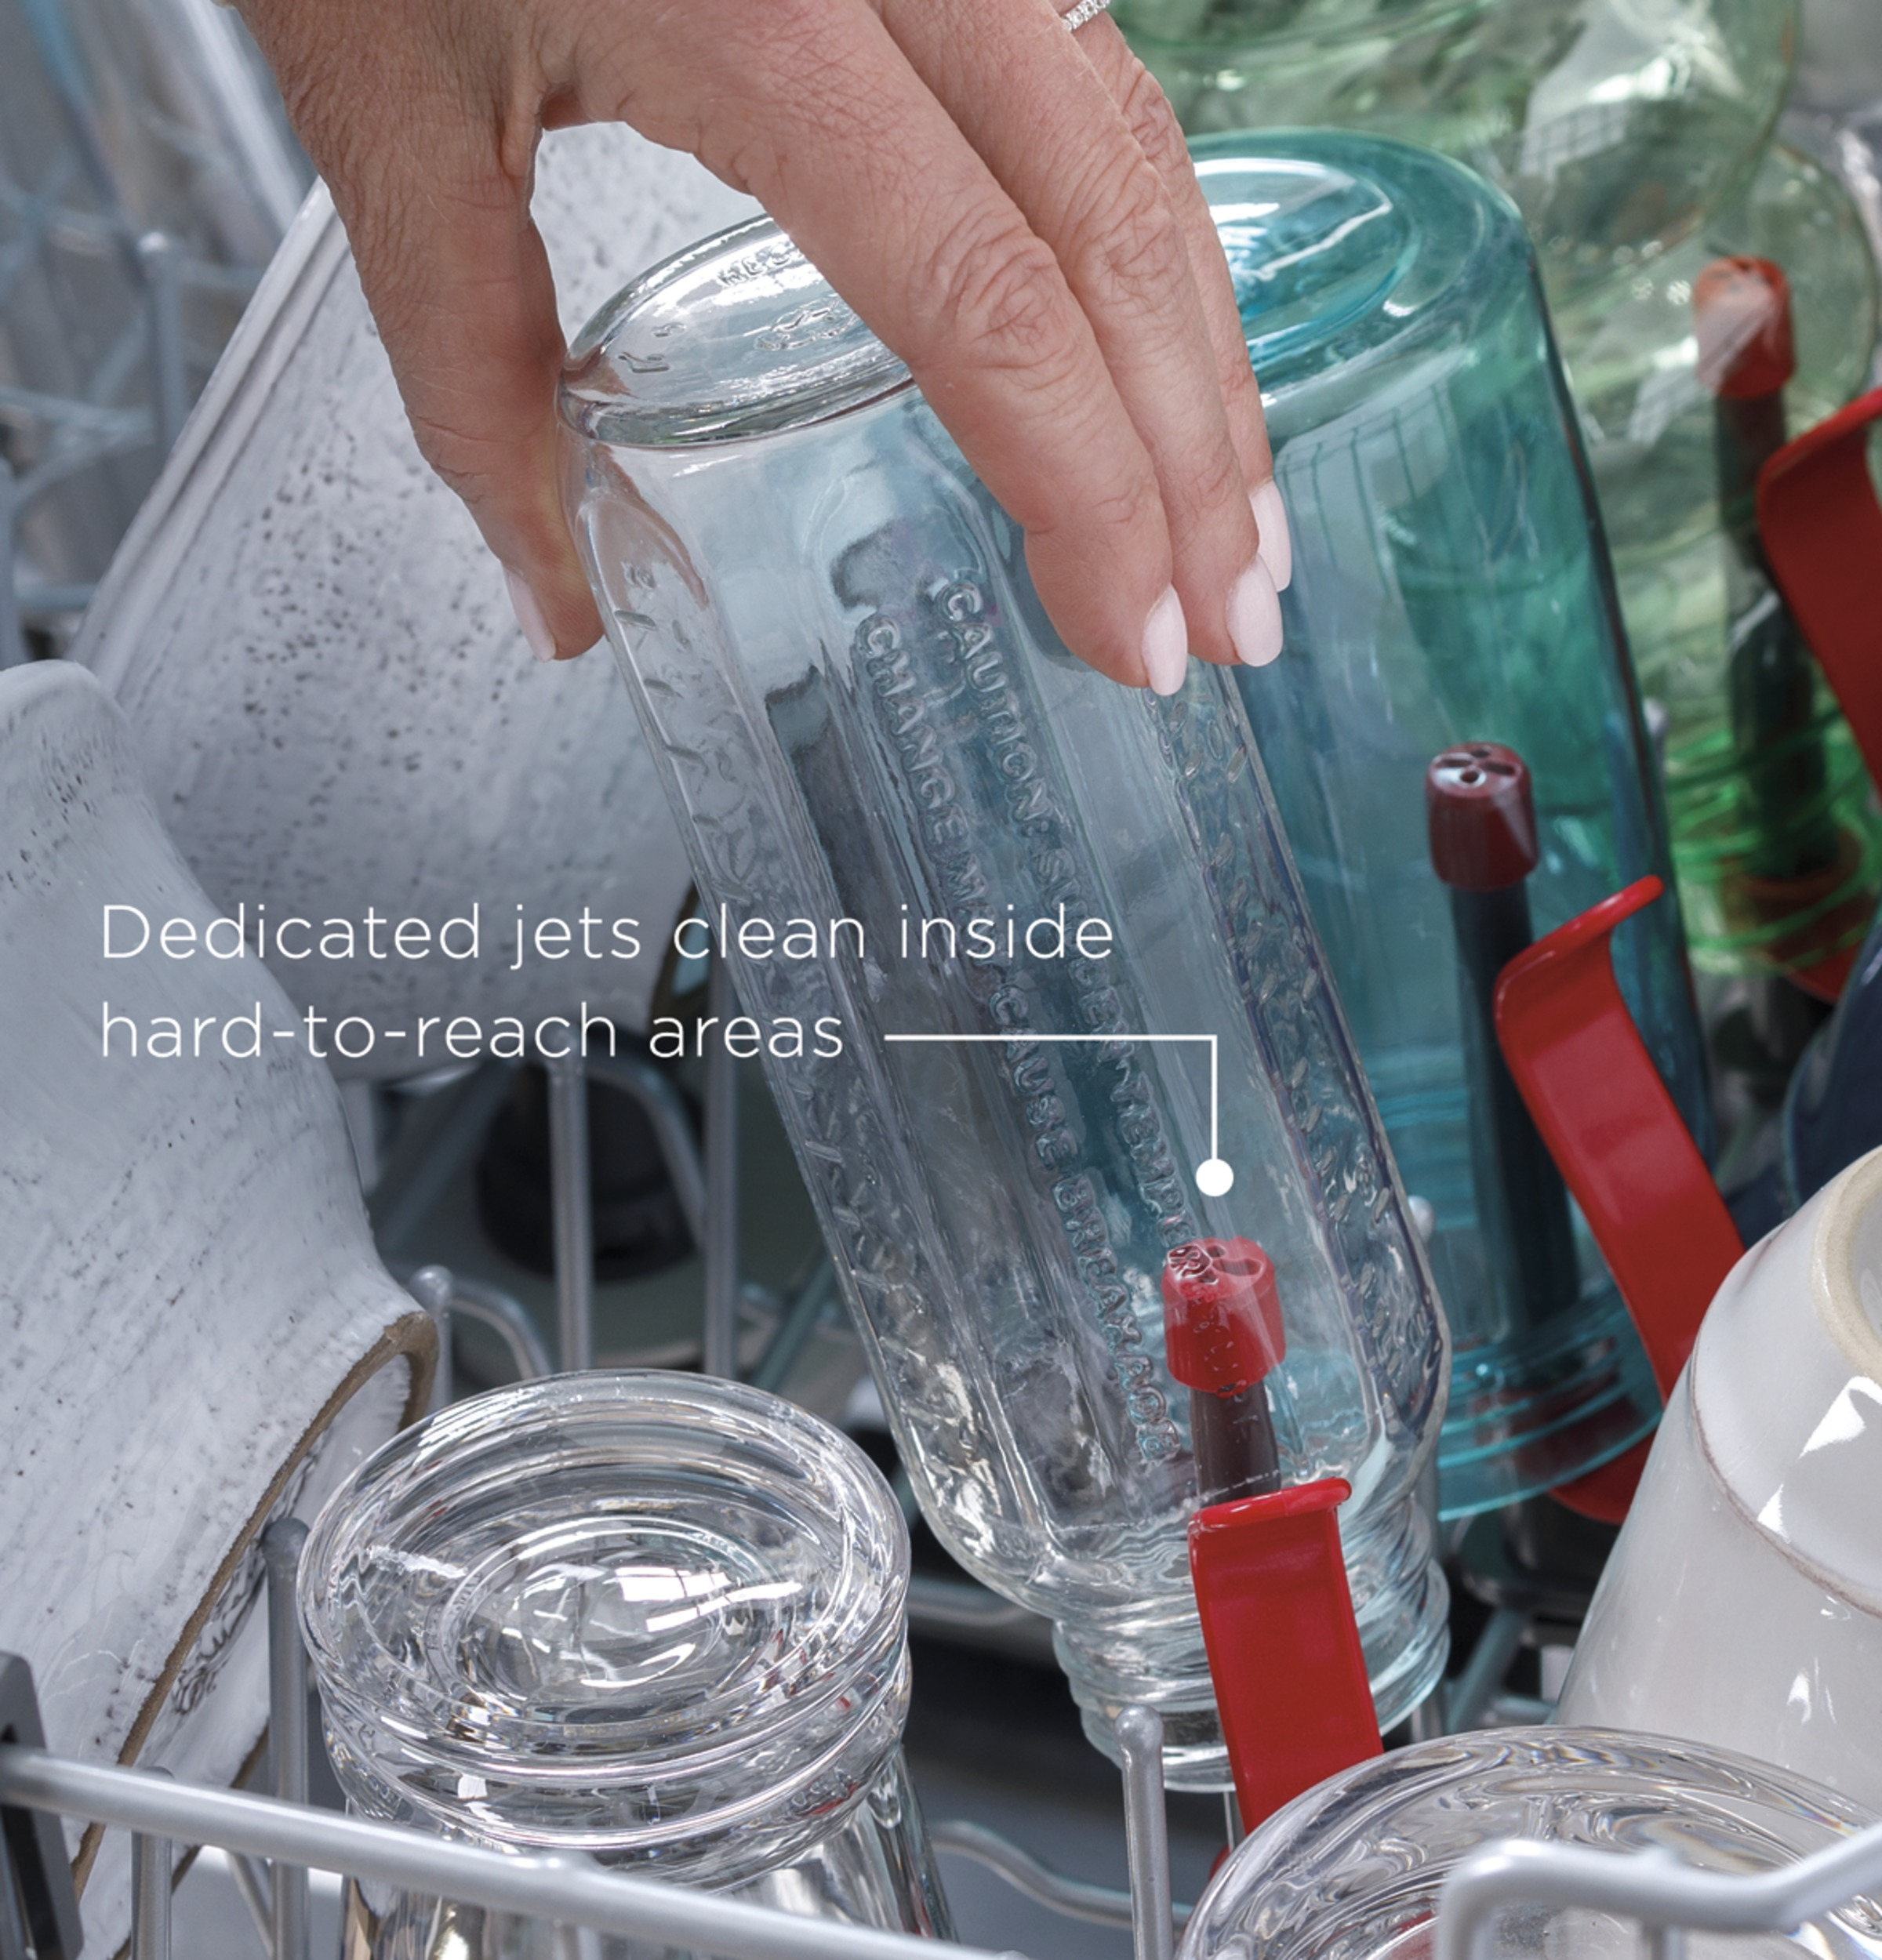 Model: GDT605PSMSS | GE GE® Top Control with Plastic Interior Dishwasher with Sanitize Cycle & Dry Boost